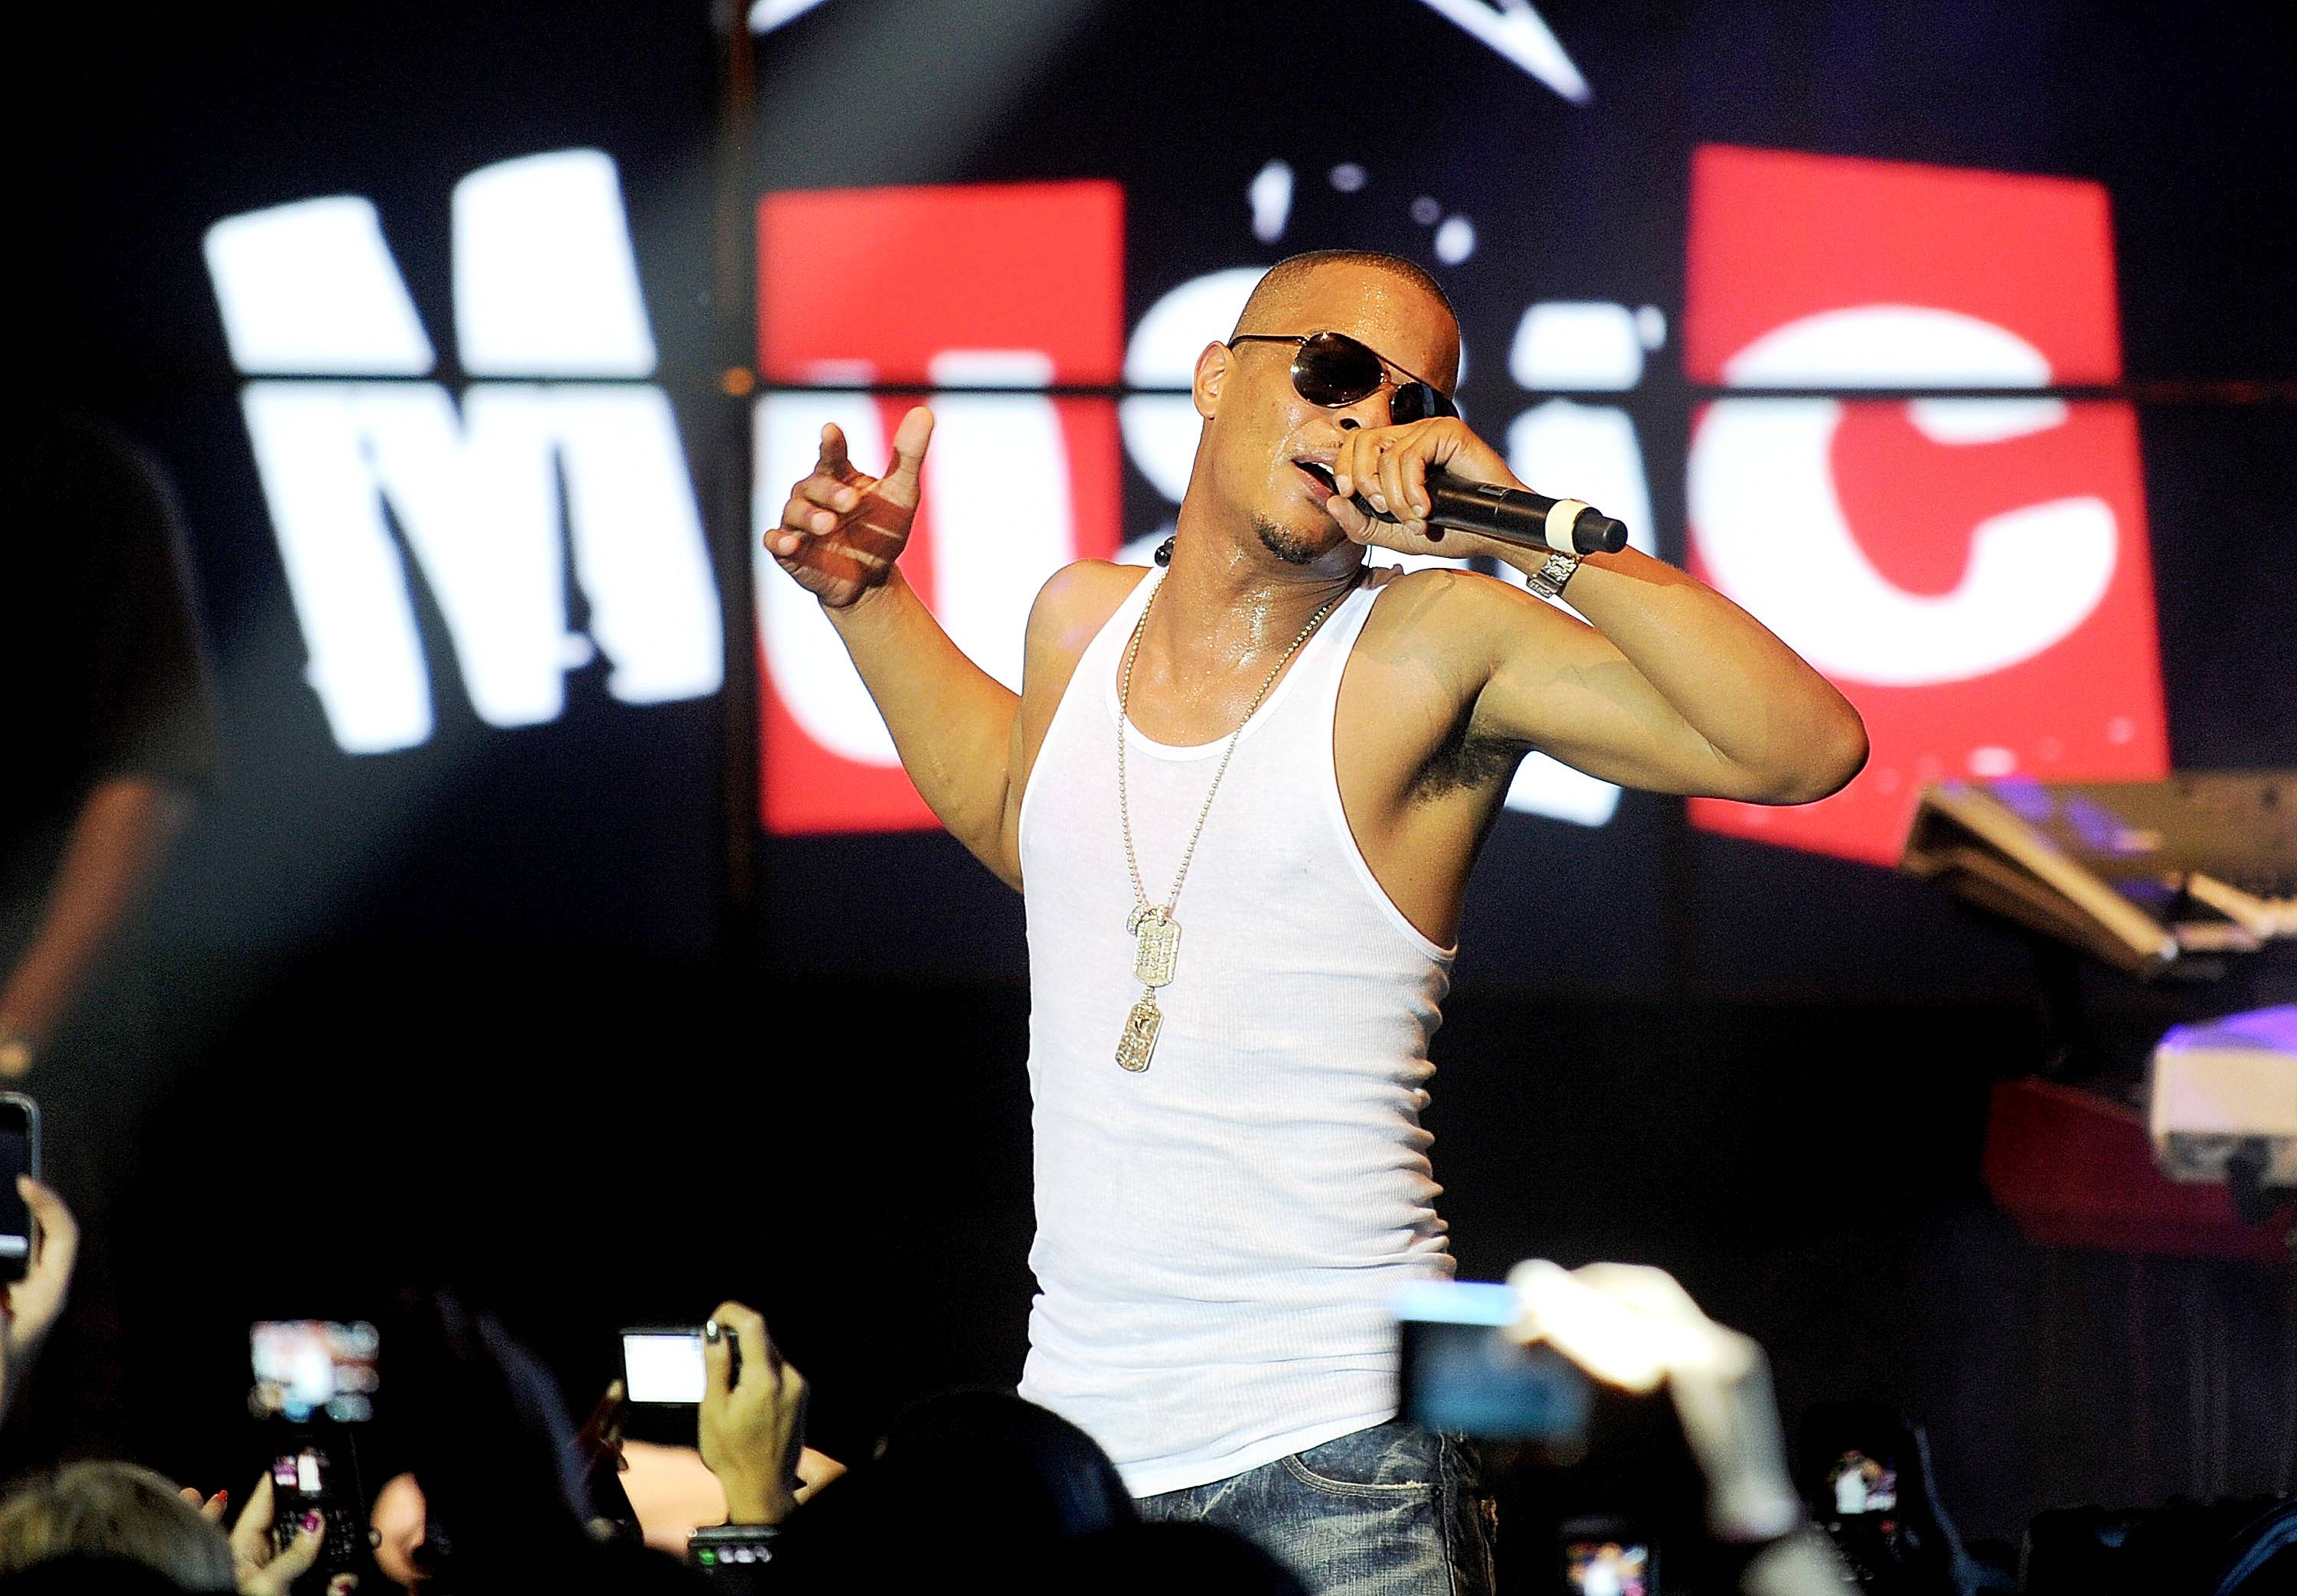 """""""Addresses"""" - T.I. recovers from """"Cruisin'"""" by going to war on """"Addresses."""" He's said in interviews that this song is a diss, though he refused to say who it's addressing. Whoever the target is, best believe they're smarting ? Tip lands some major body blows here.  (Photo: Jamie McCarthy/Getty Images)"""